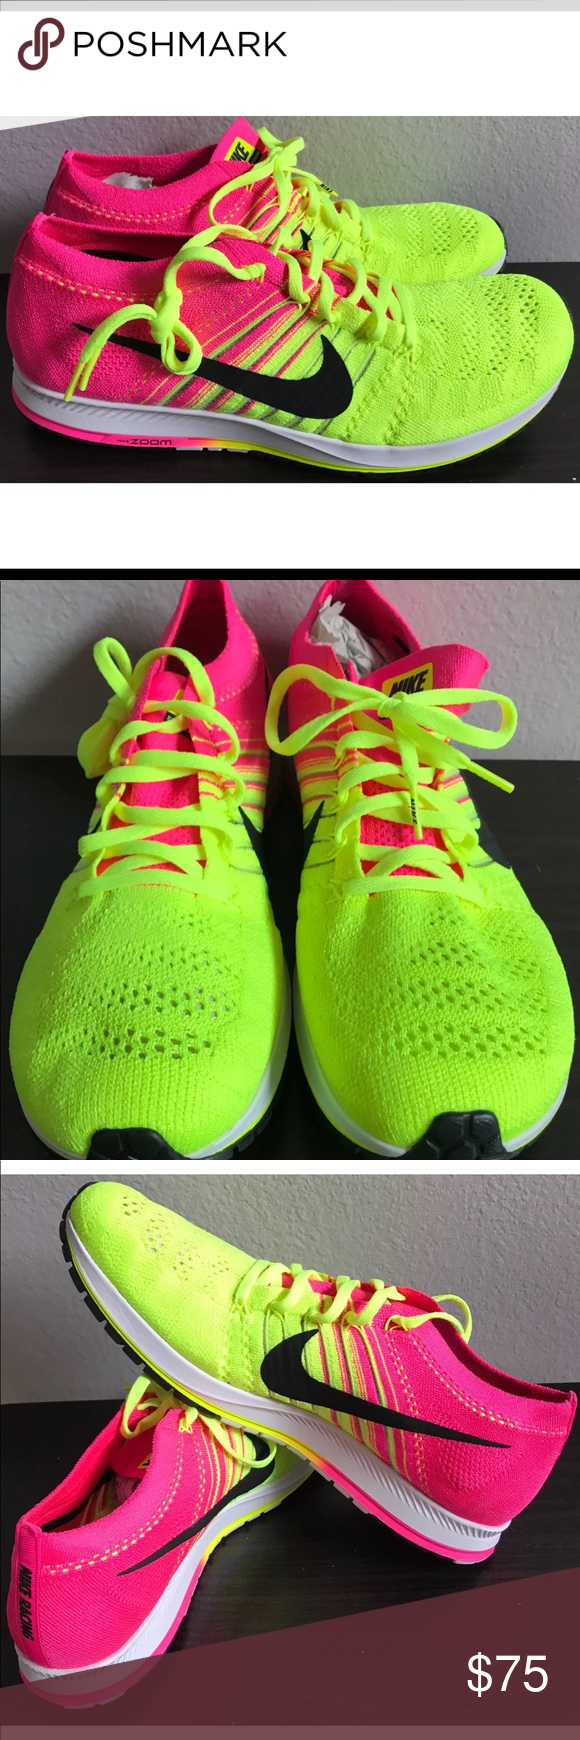 5a522465257b5 Nike Zoom Streak Flyknit Run Running Shoes Unisex BRAND  Nike MODEL  Nike  Flyknit Streak STYLE NUMBER  (835994-999) SIZE  Men  10.5   Women  12  CONDITION  ...